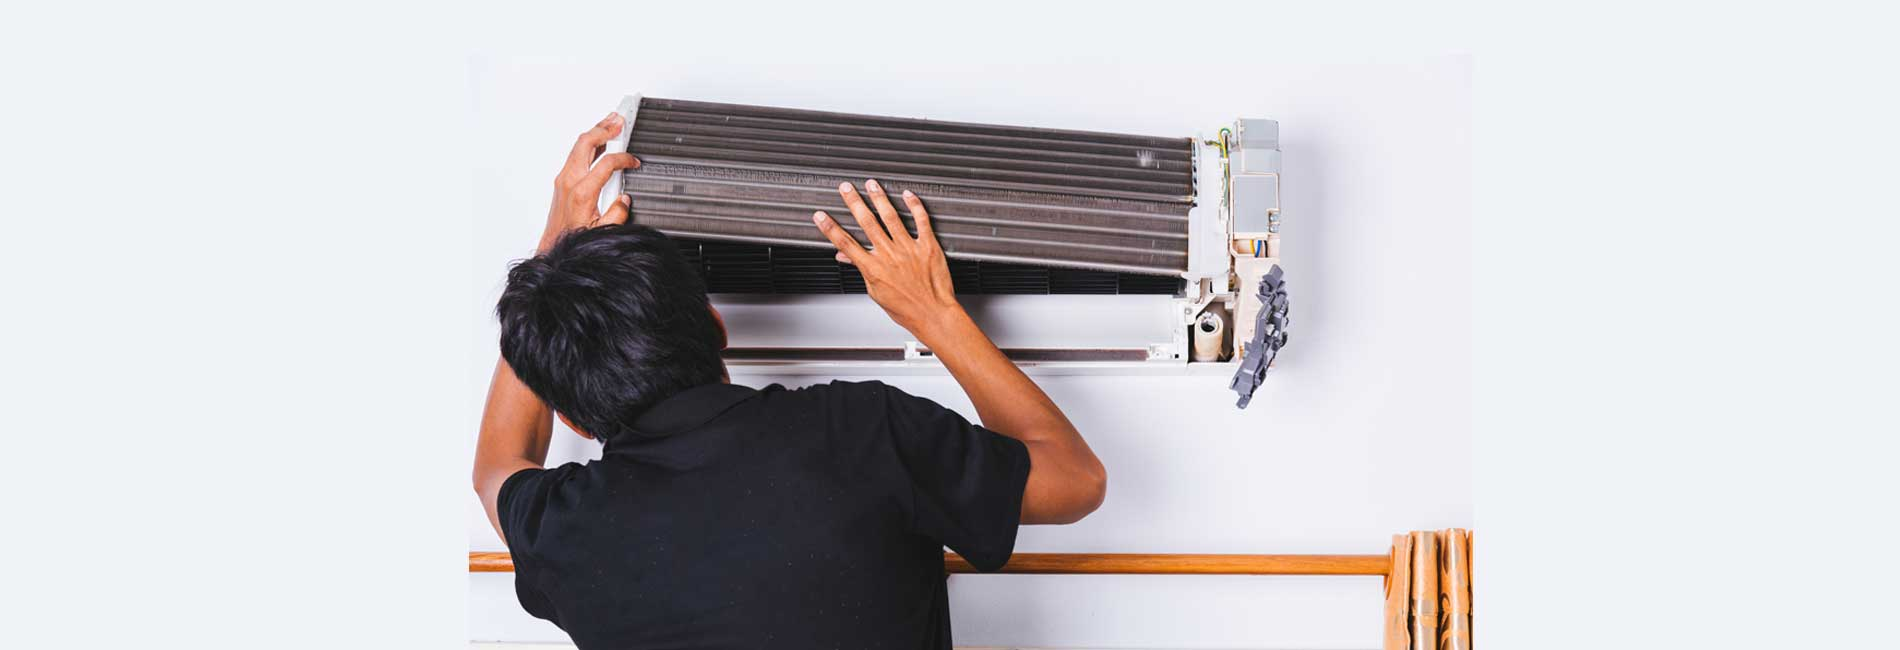 Air Condition Service in Mandaveli